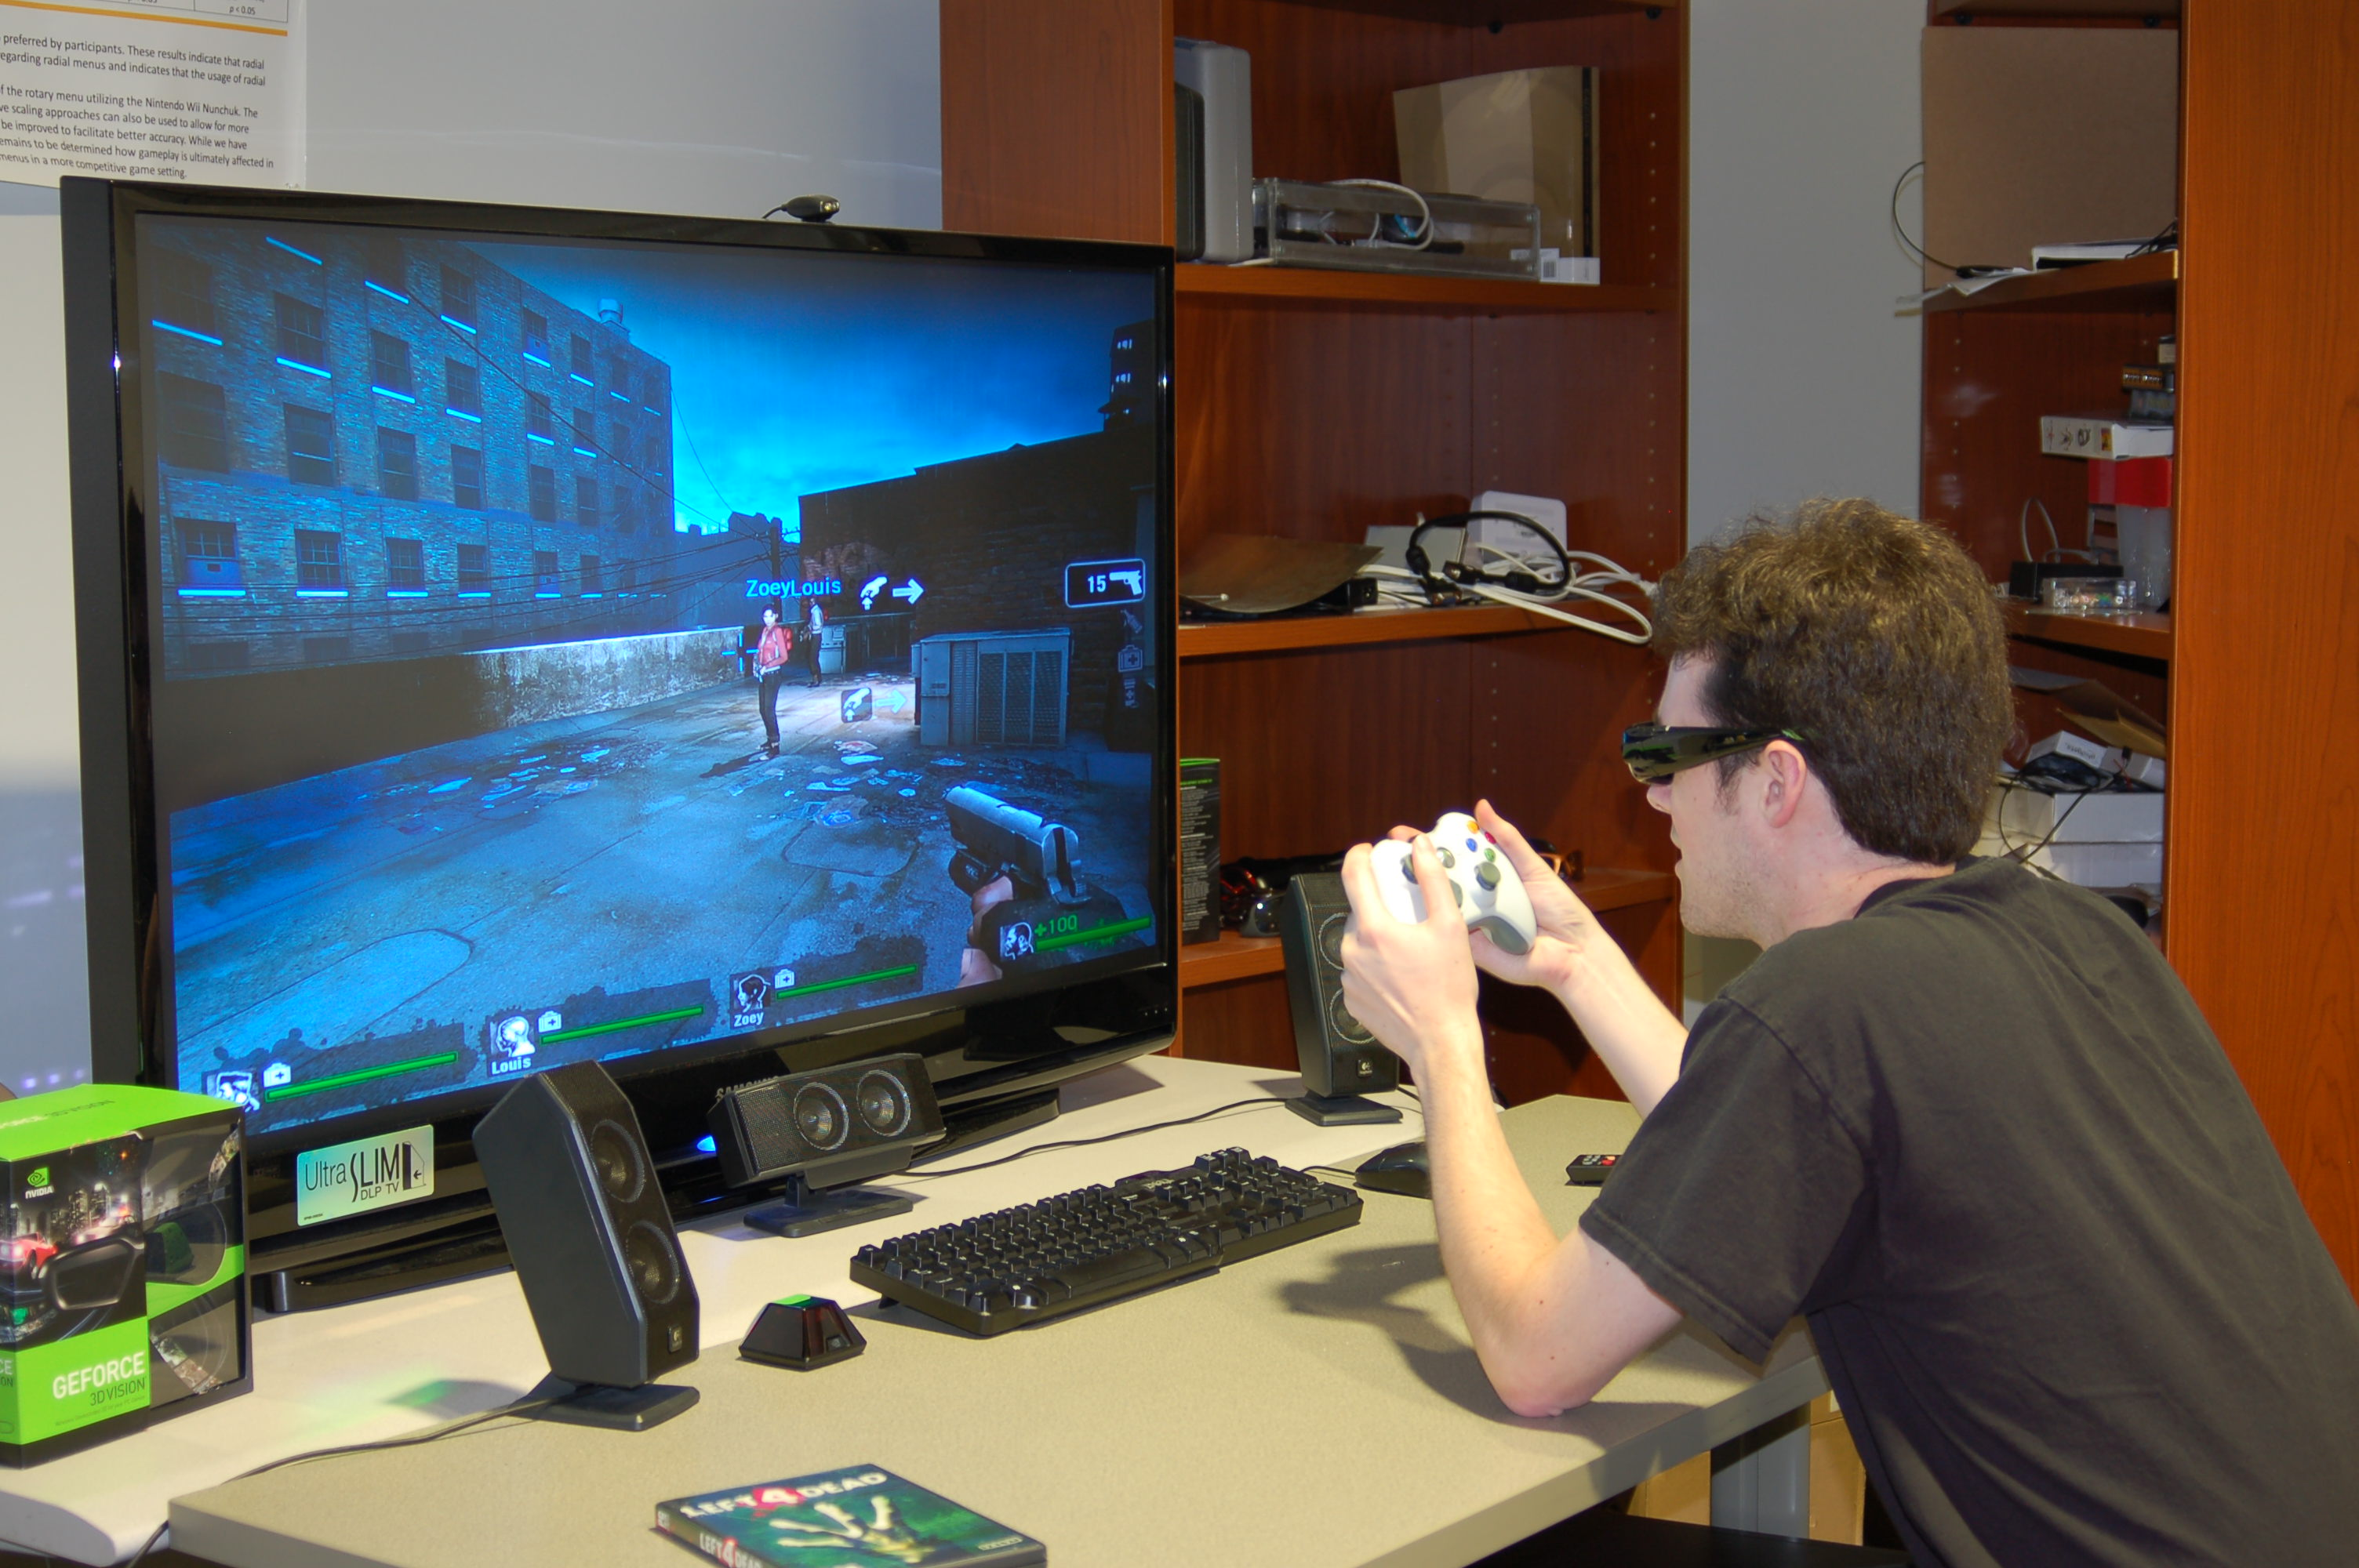 Stereoscopic 3d Gaming Computer: Interactive Computing Experiences Research Cluster